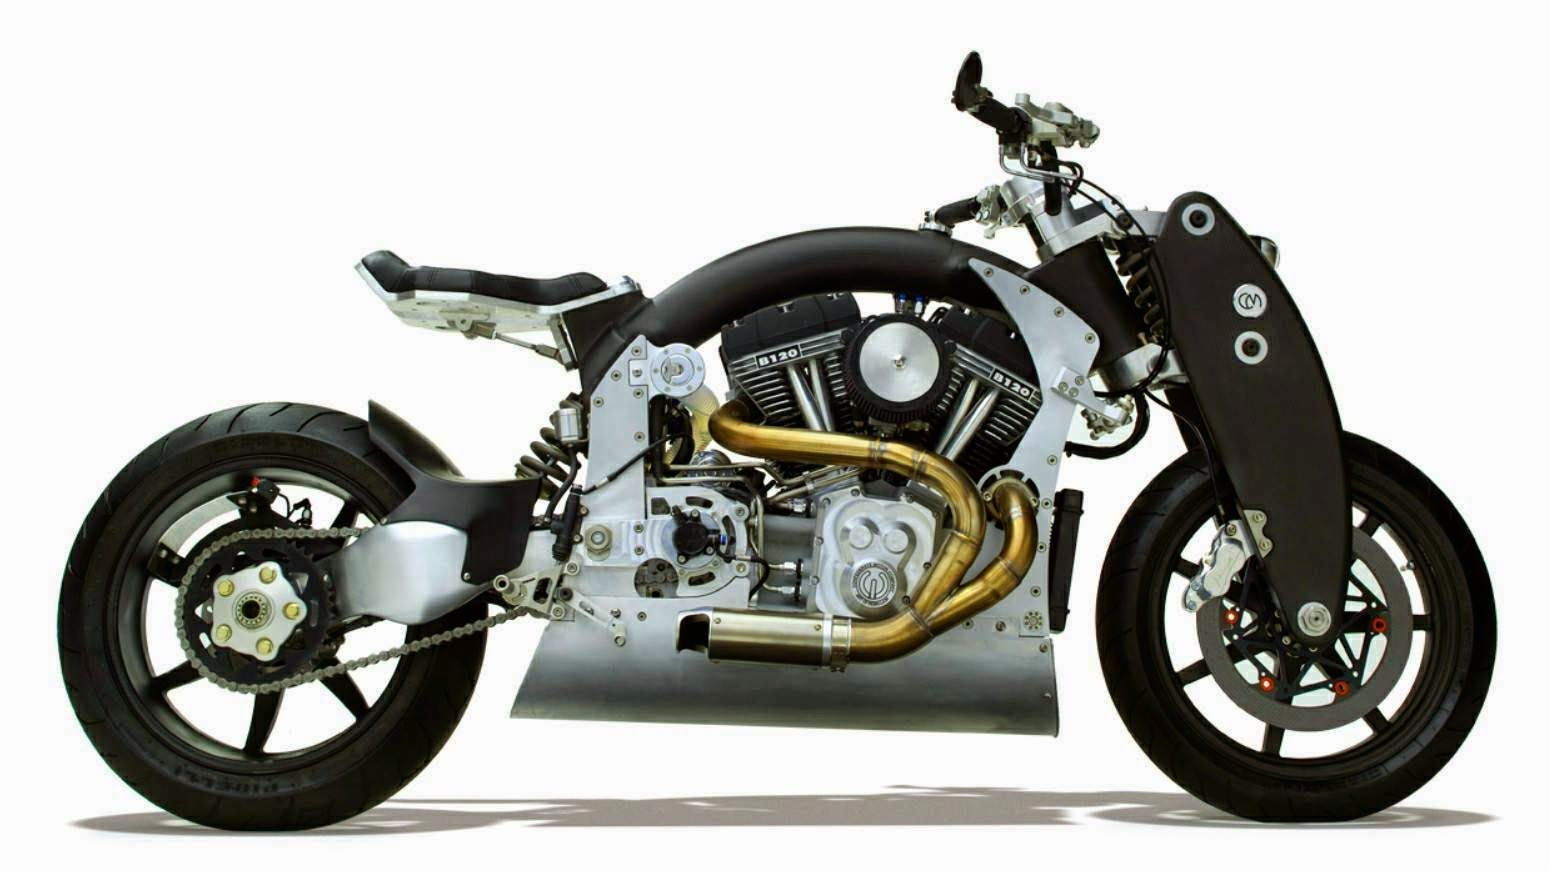 Confederate B120 Wraith Price 135 000 Motorcycles Motorcycle